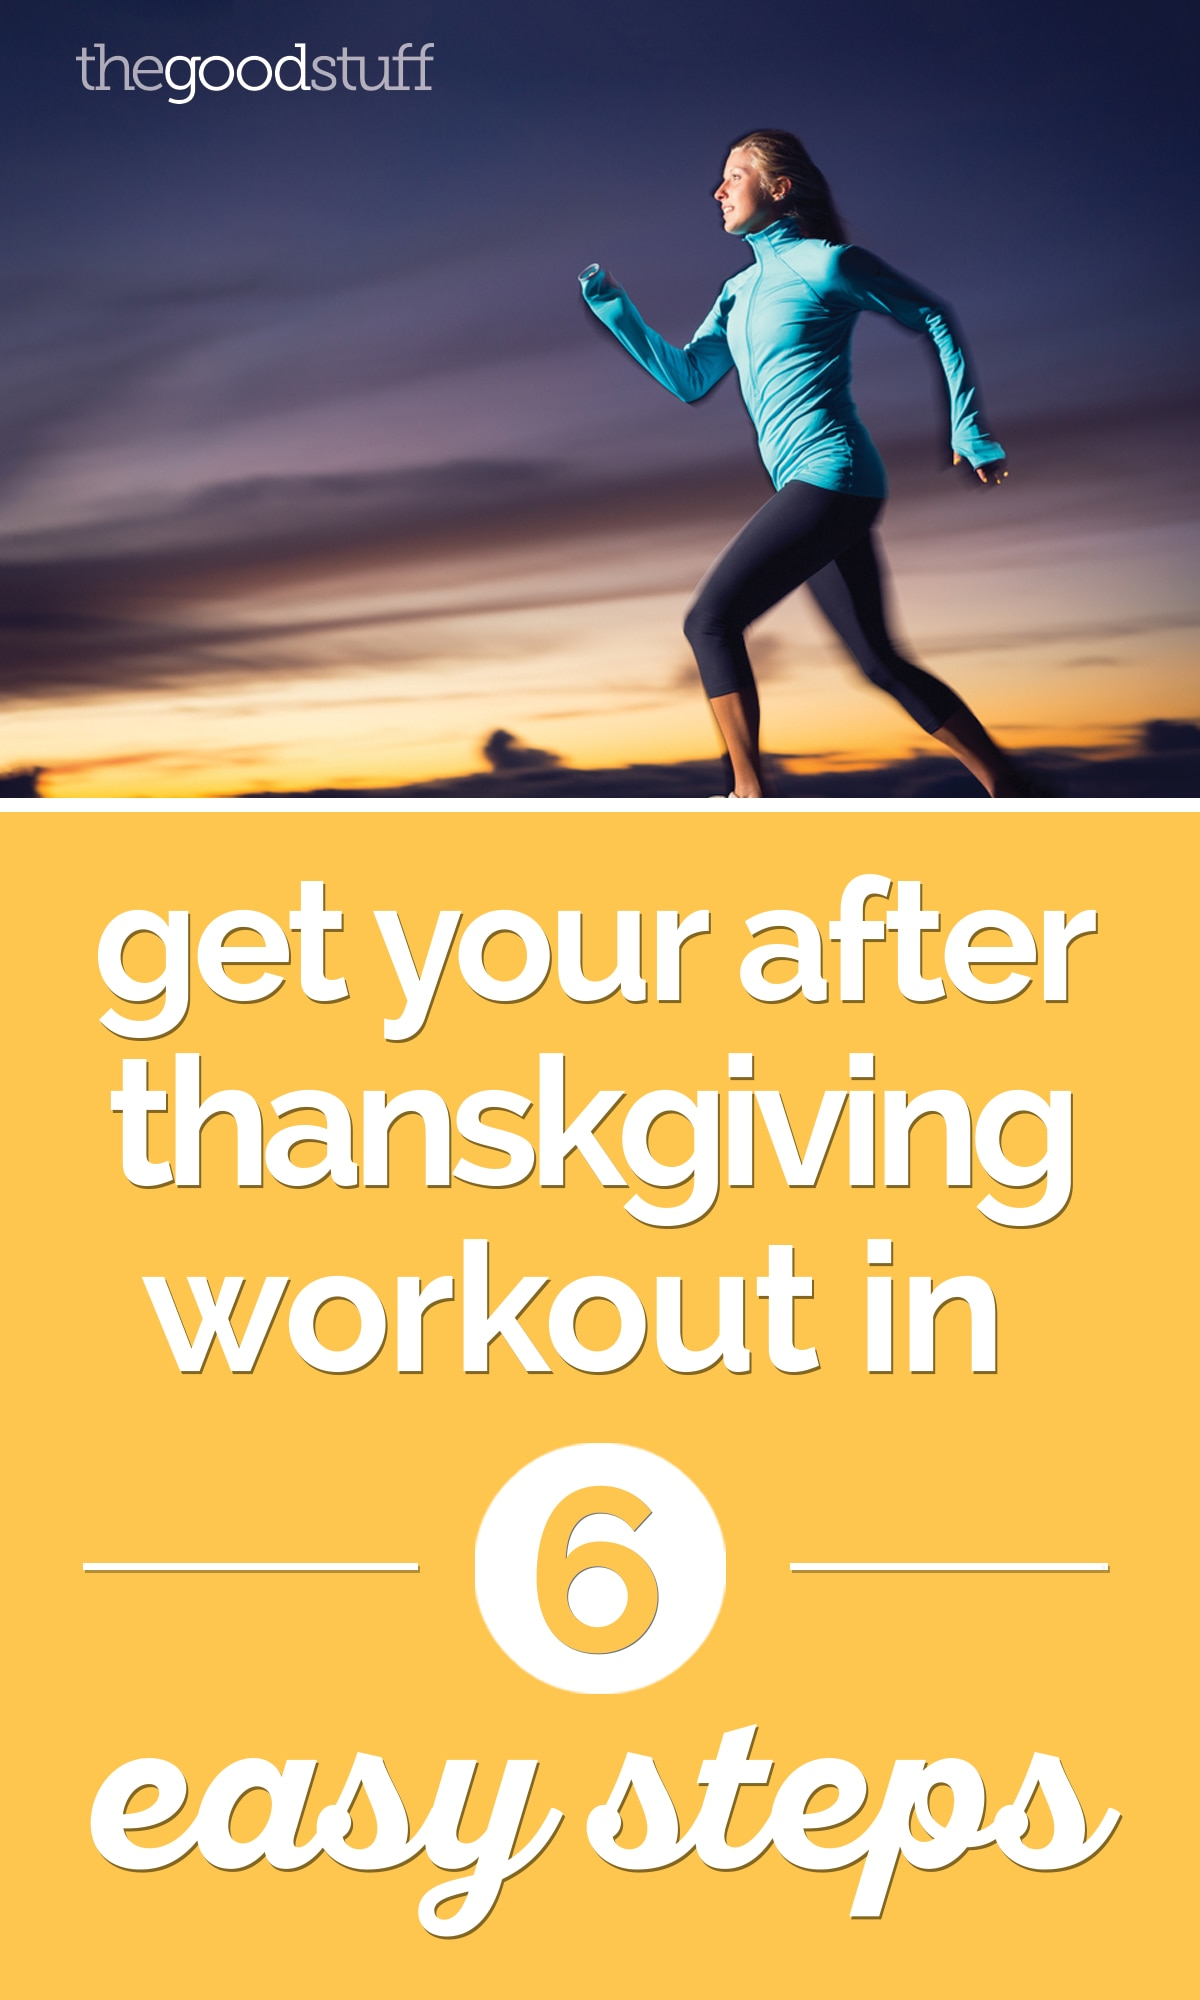 Get Your After Thanksgiving Workout In 6 Easy Steps | thegoodstuff